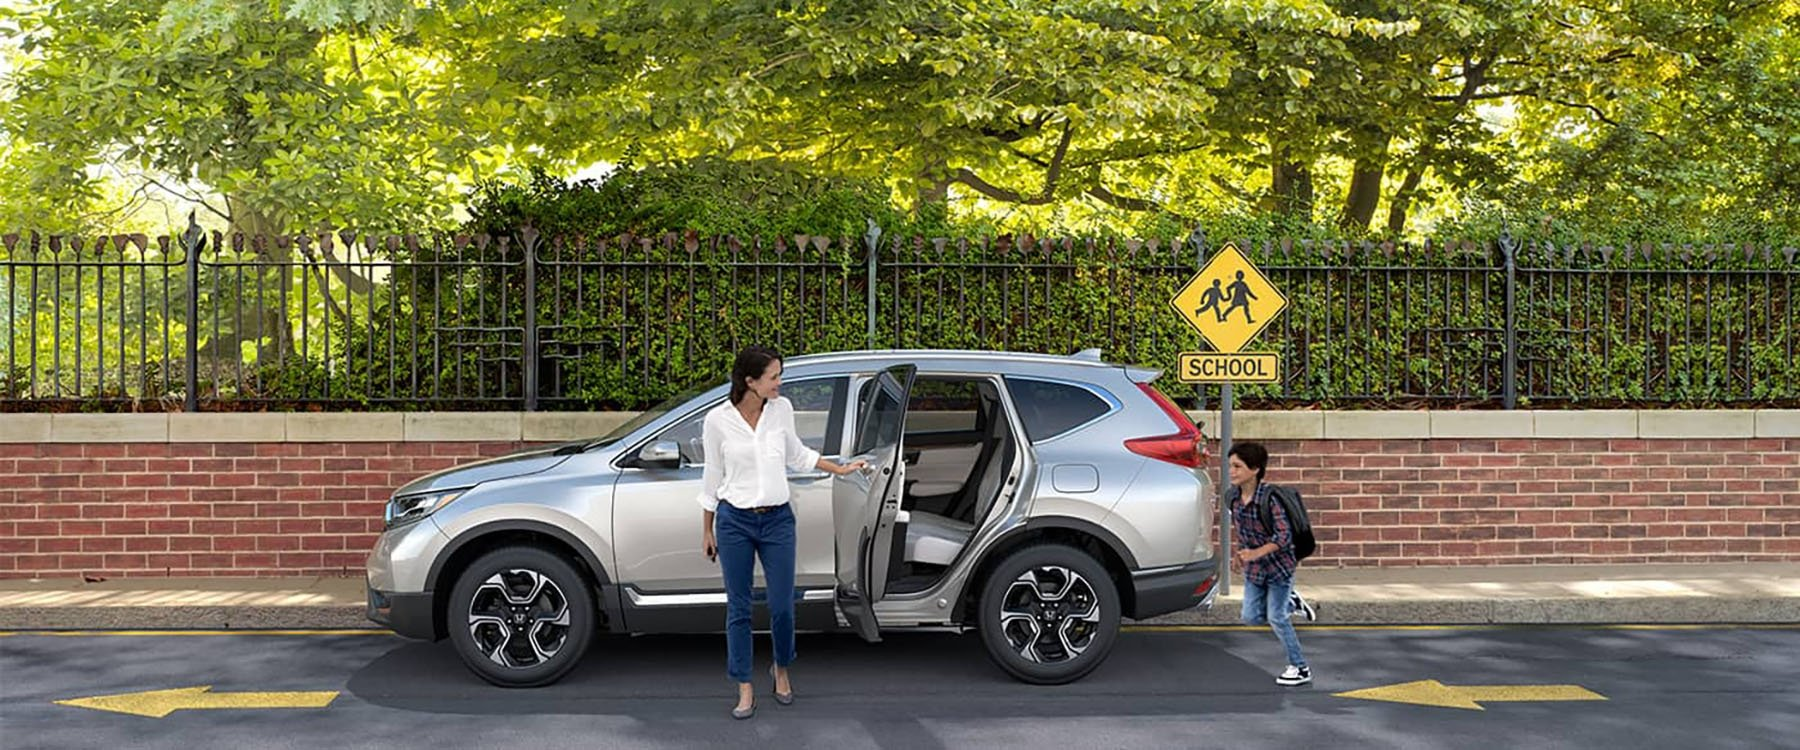 2017 Honda CR-V School Zone